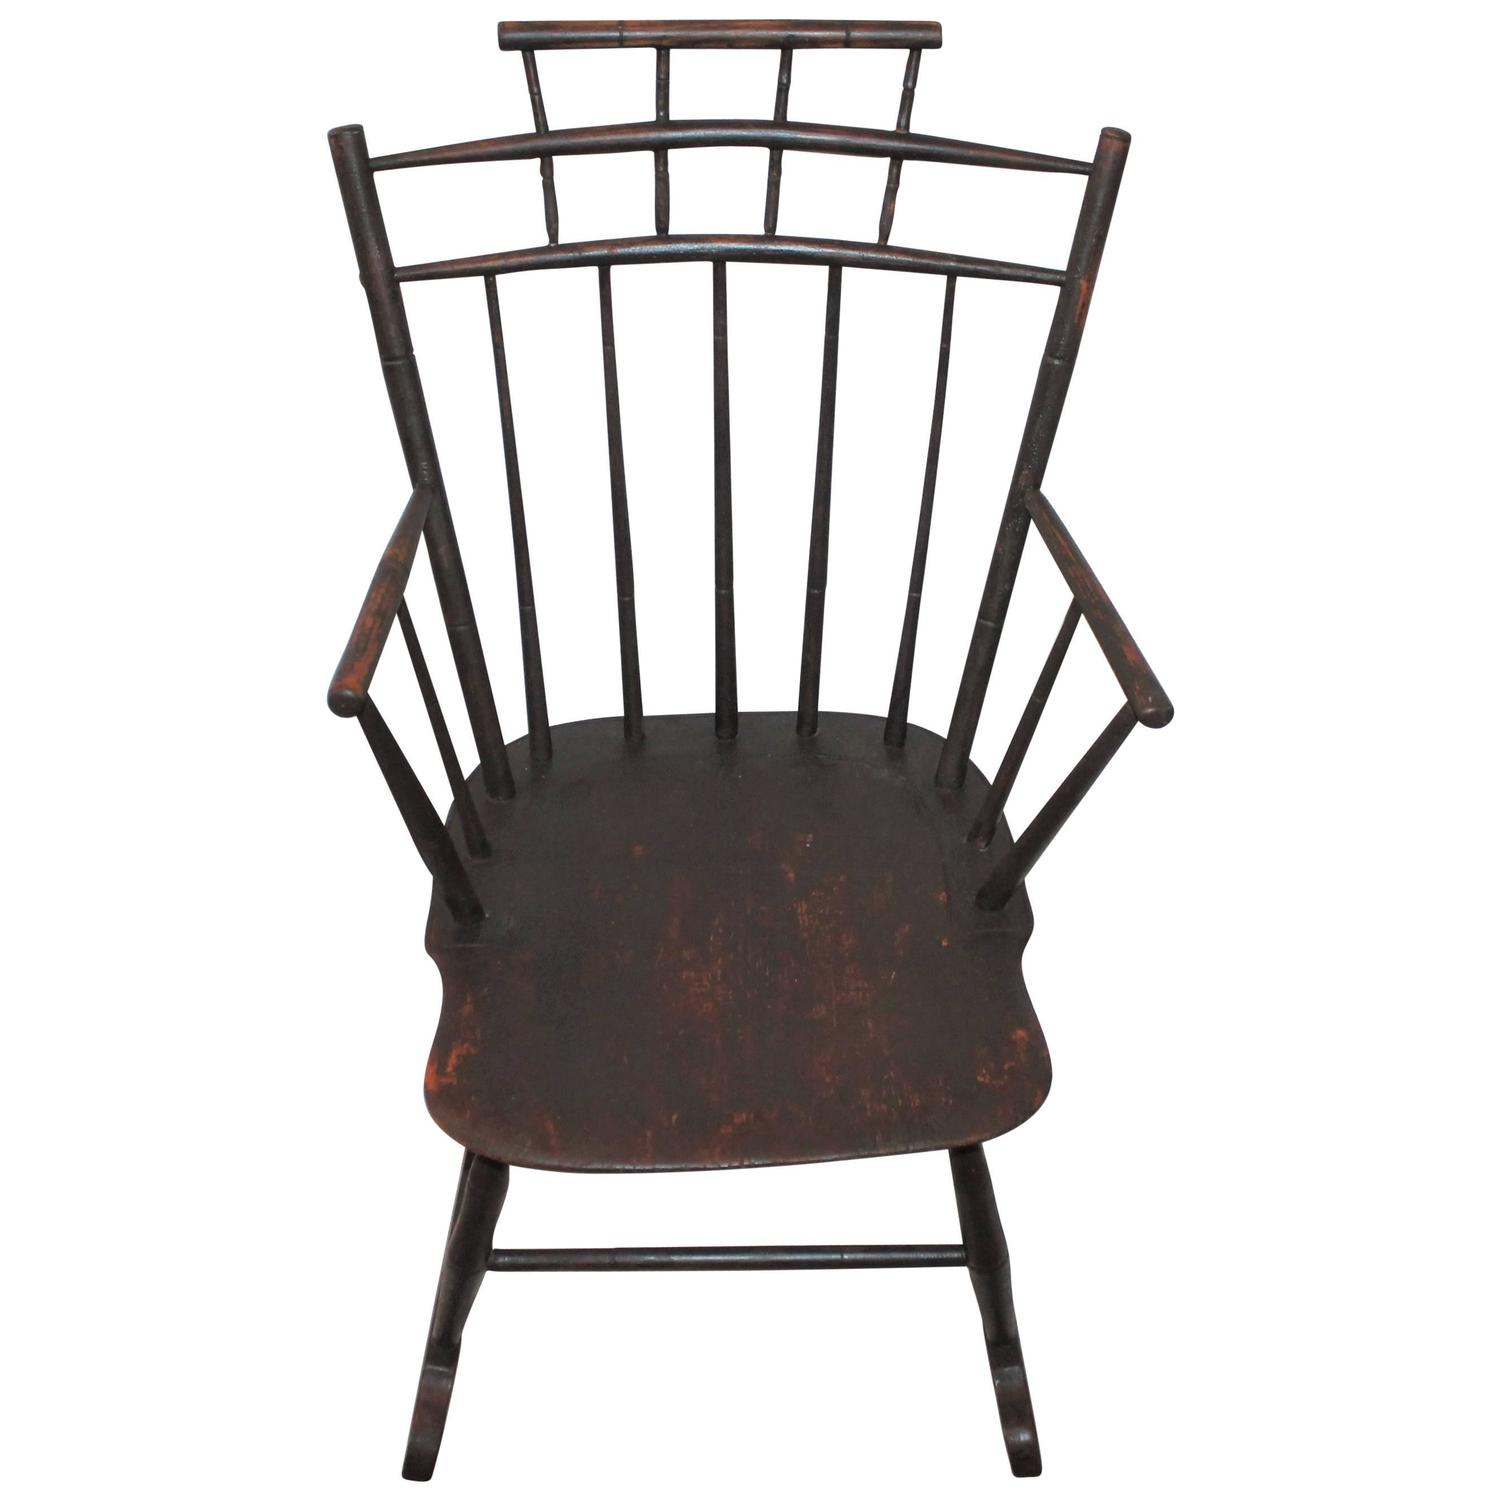 19th Century Brown Painted Windsor Rocking Chair For Sale at 1stdibs